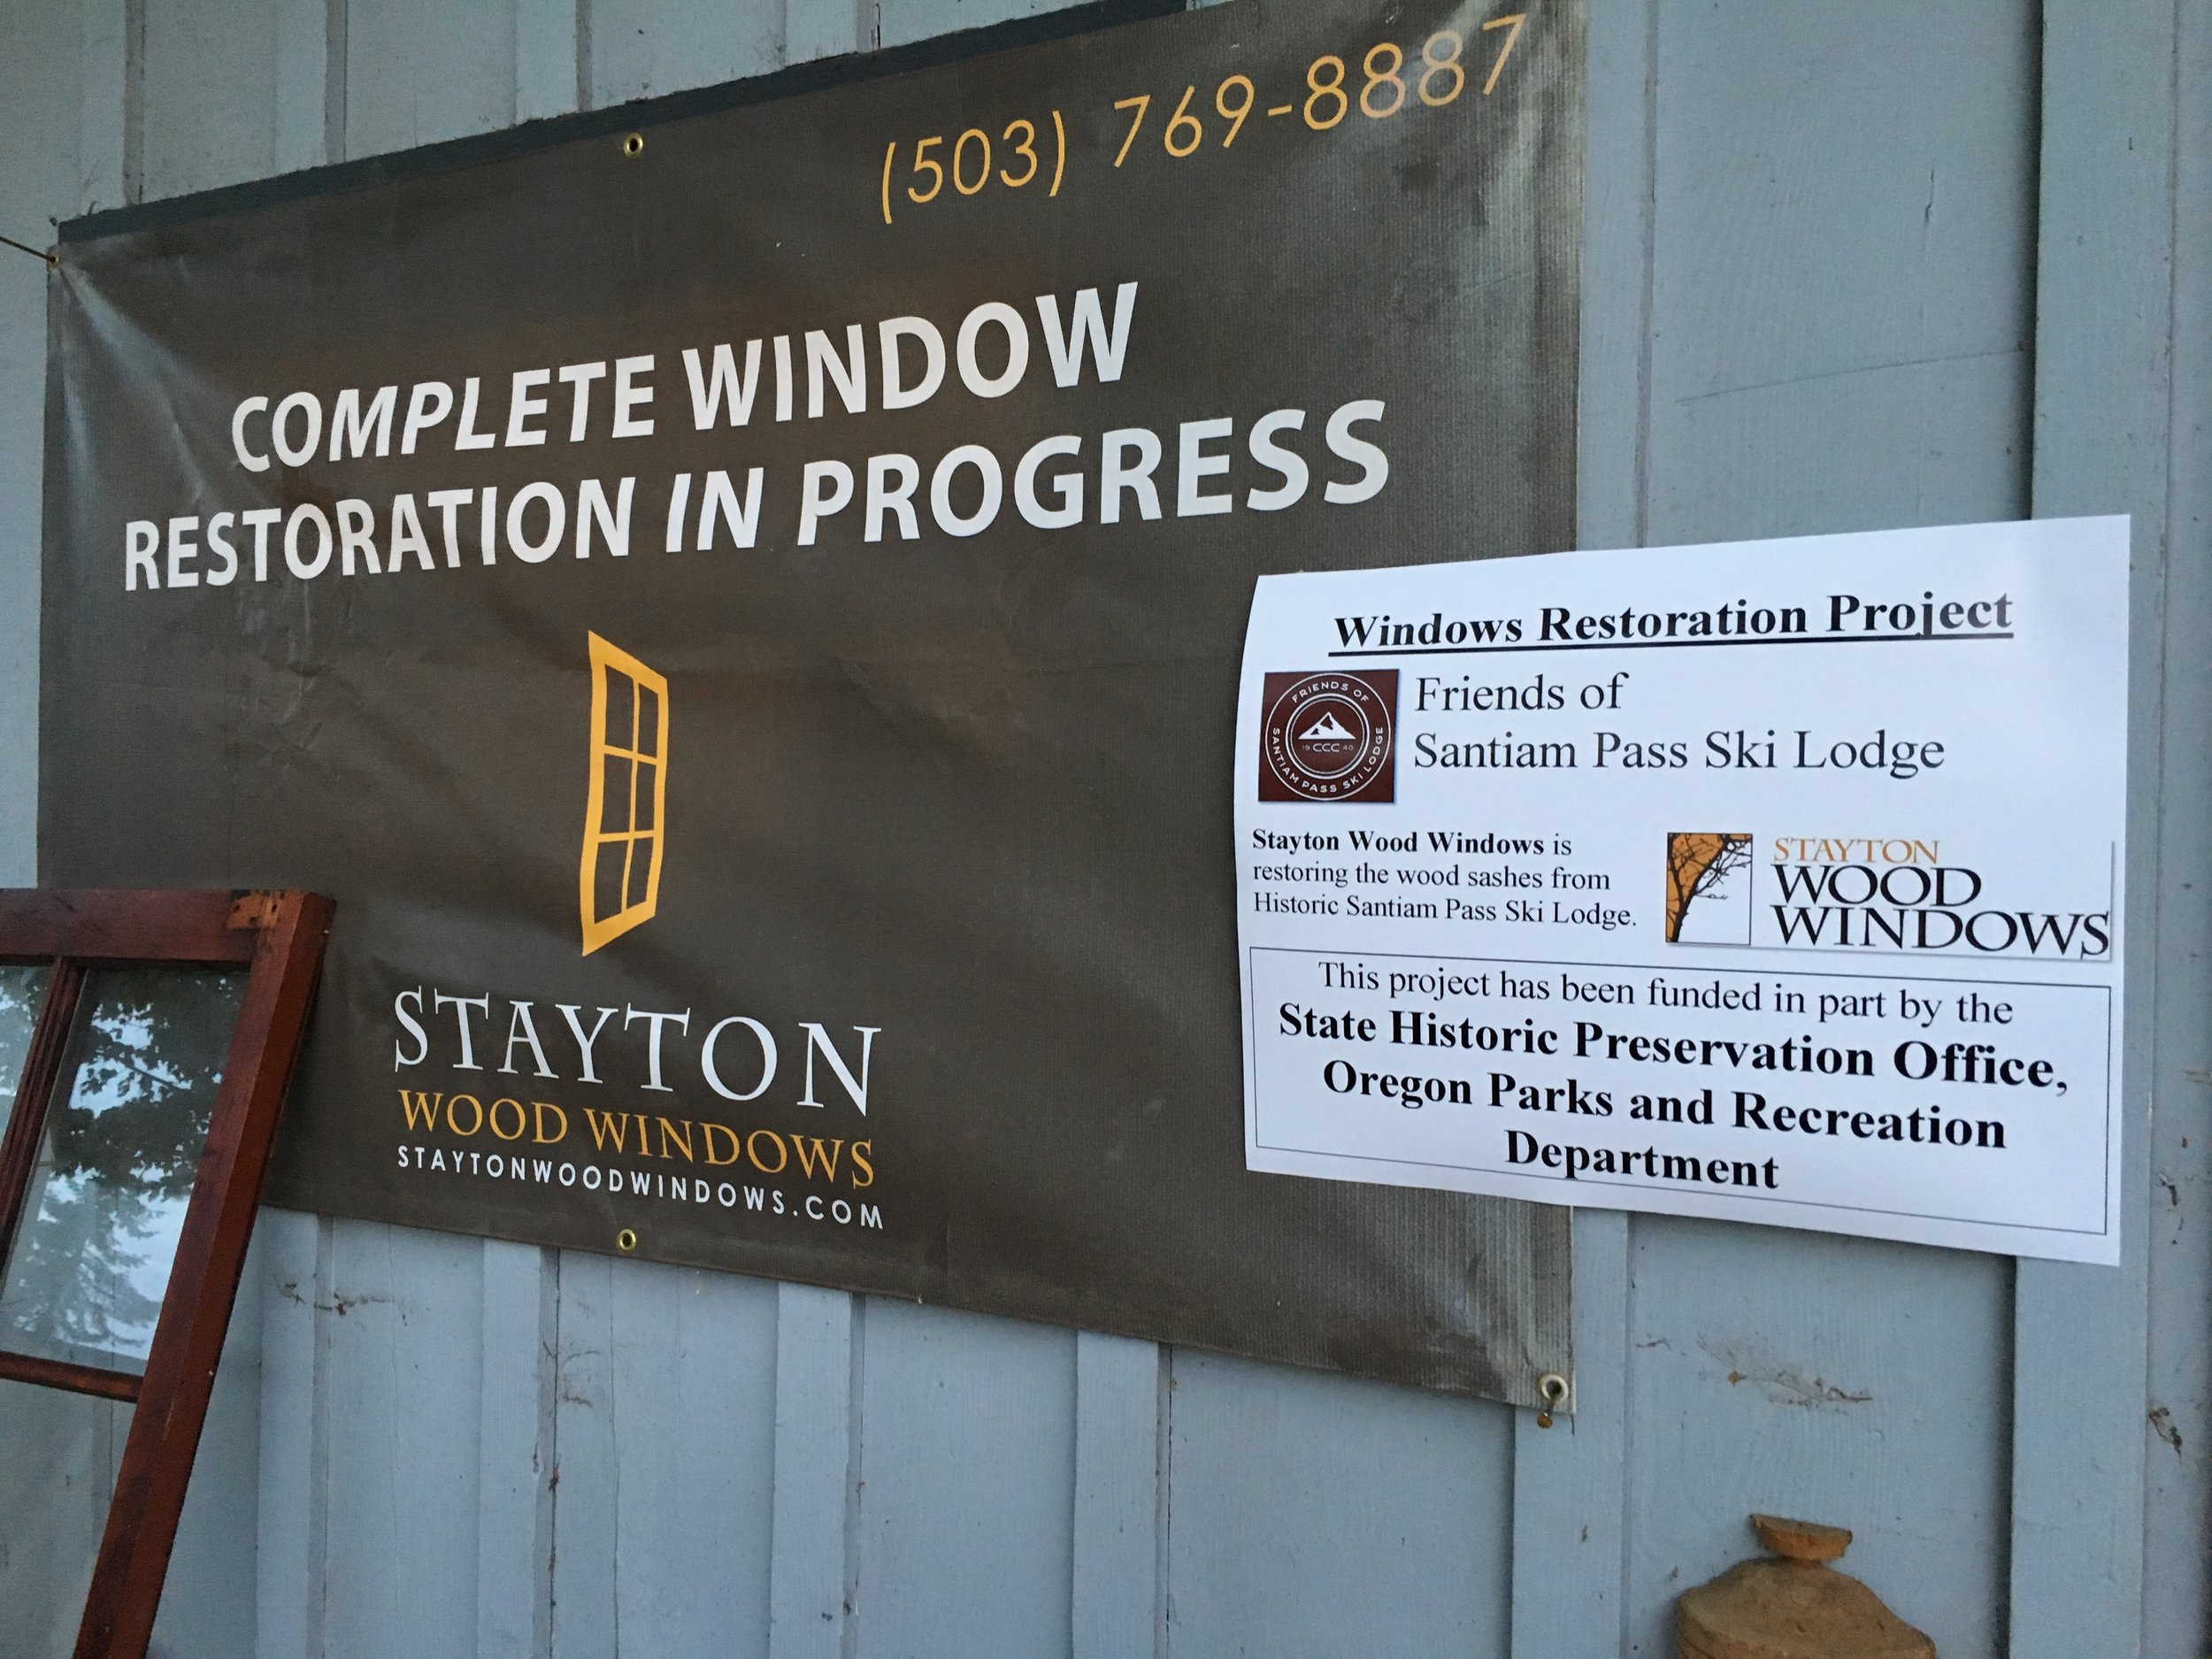 We are grateful for a Preserving Oregon Grant from the State Historic Preservation office, and to Mack Strawn and the crew at Stayton Wood Windows for making possible the restoration of the sashes. Almost half were damaged or destroyed by vandals.